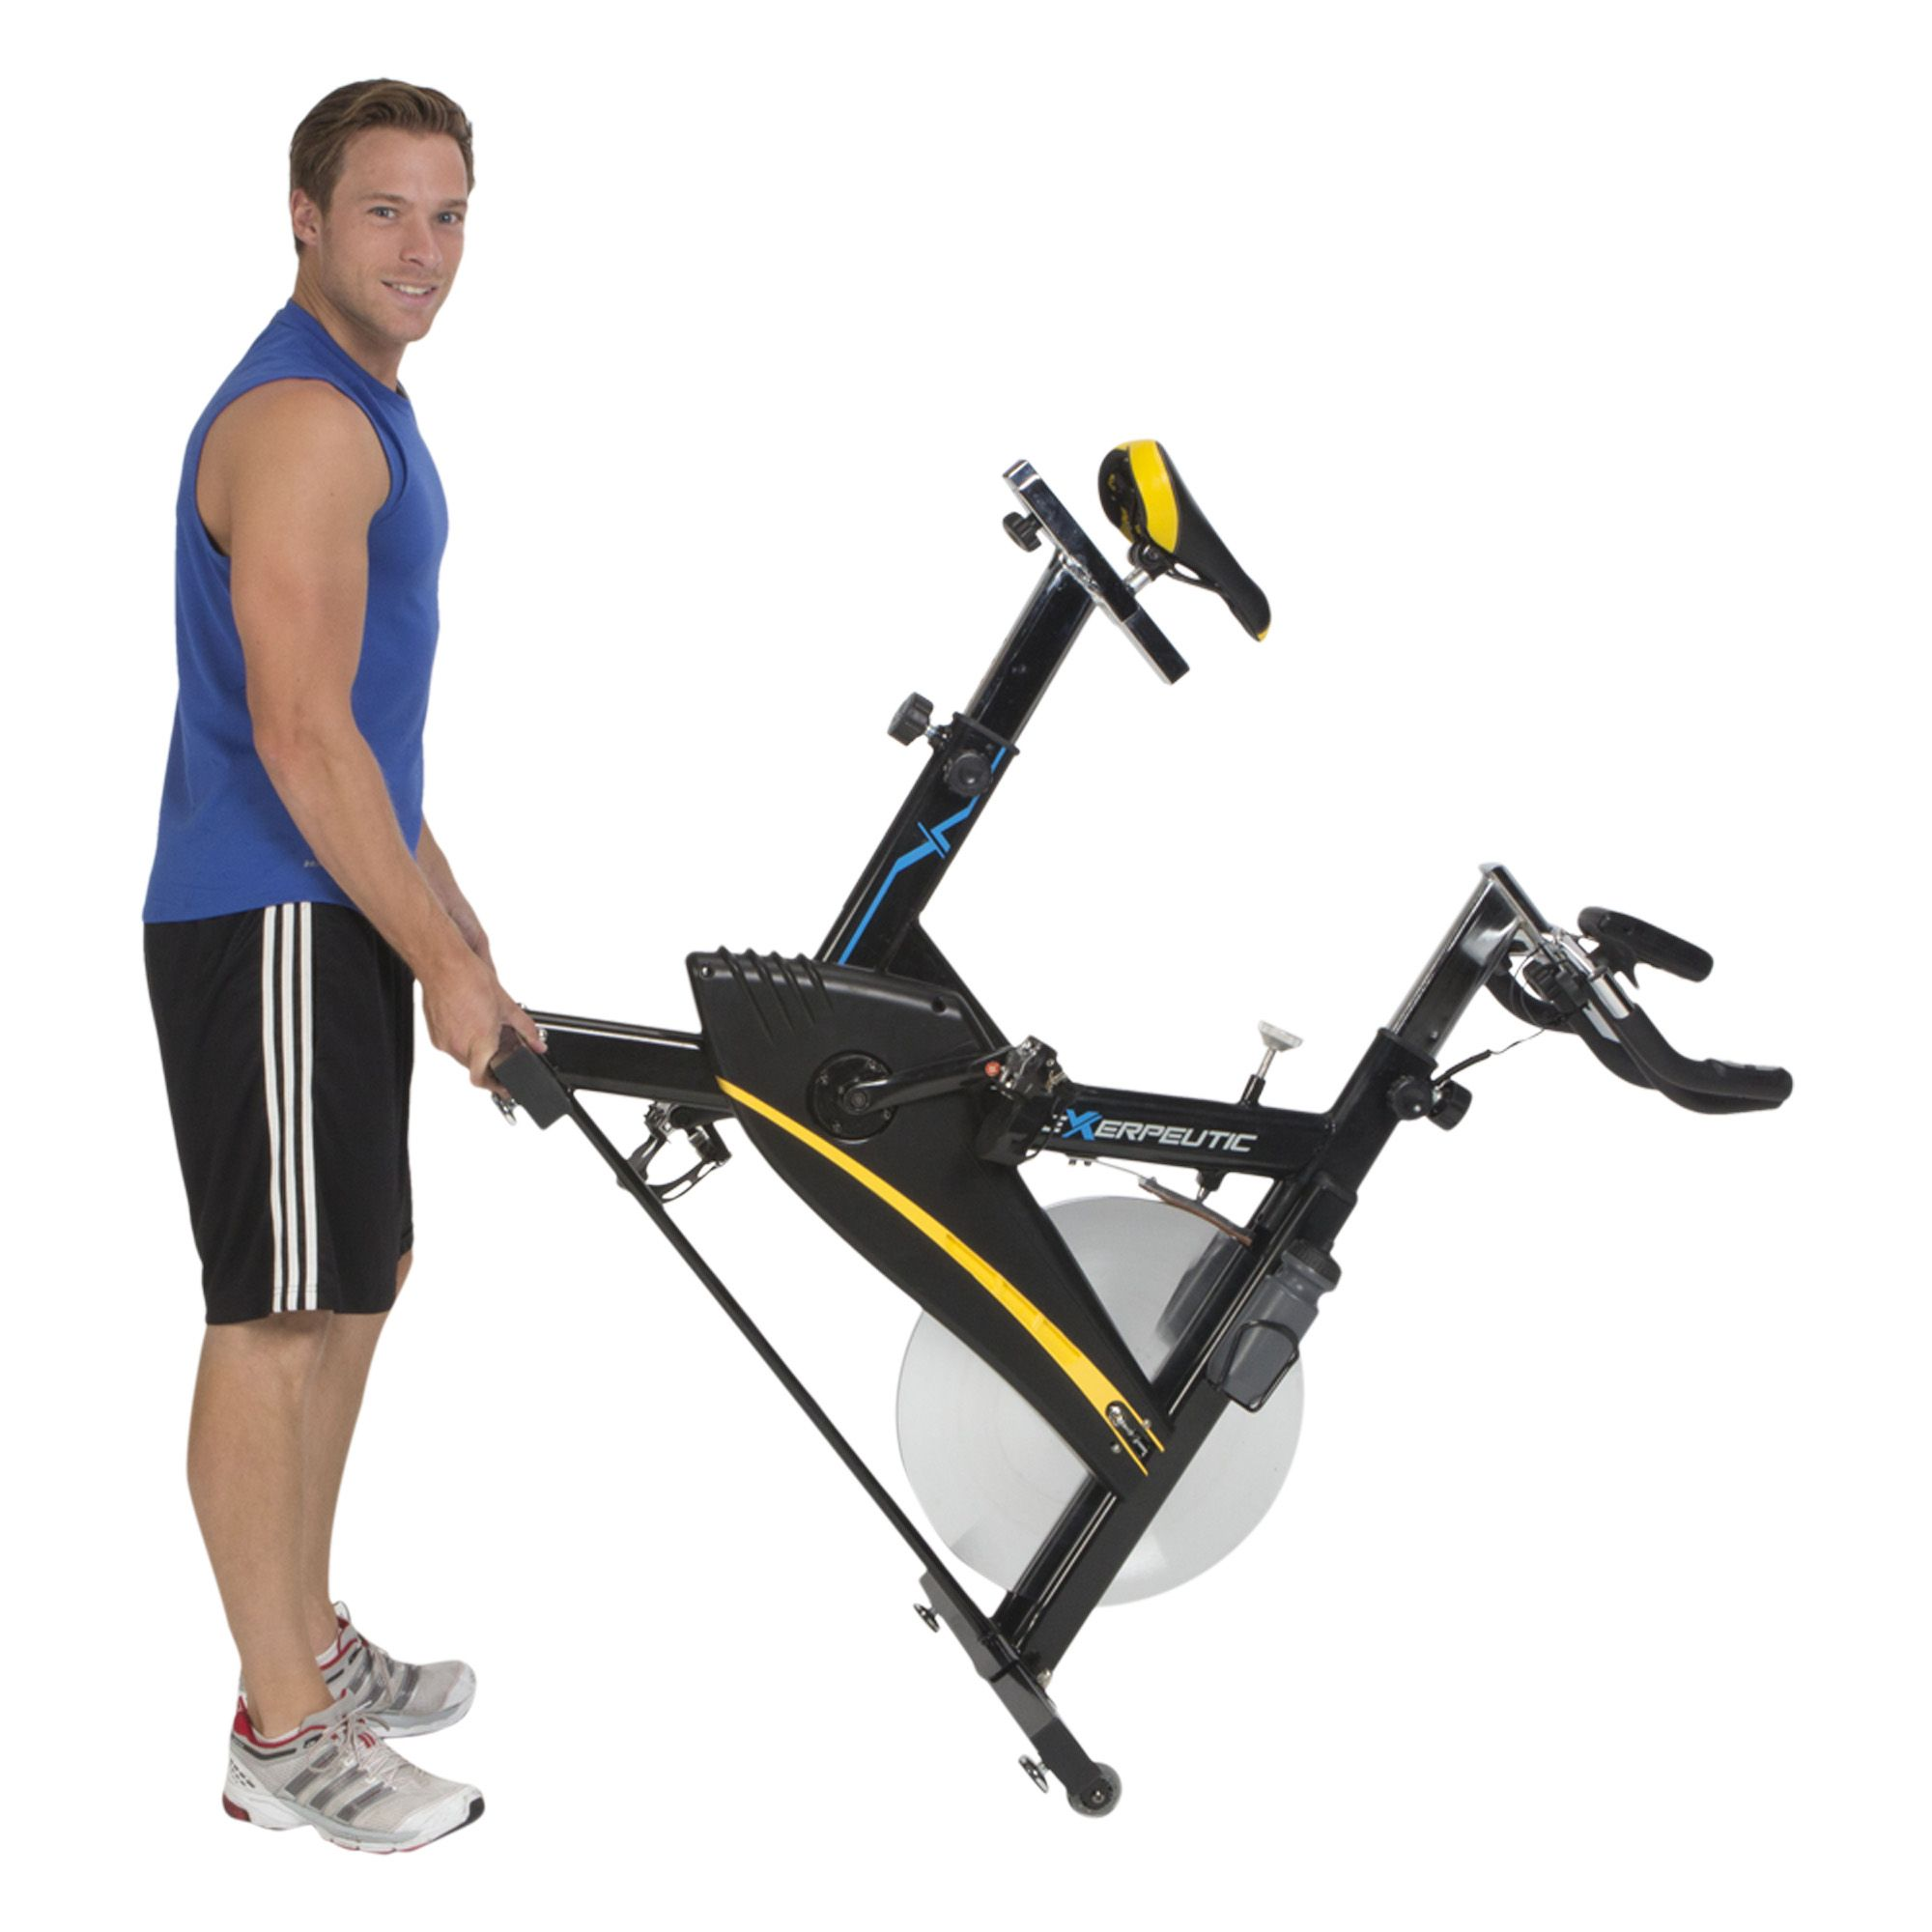 Exerpeutic LX9 Super High Capacity Training Cycle with Computer, Elbow Supports and Heart Pulse Sensors